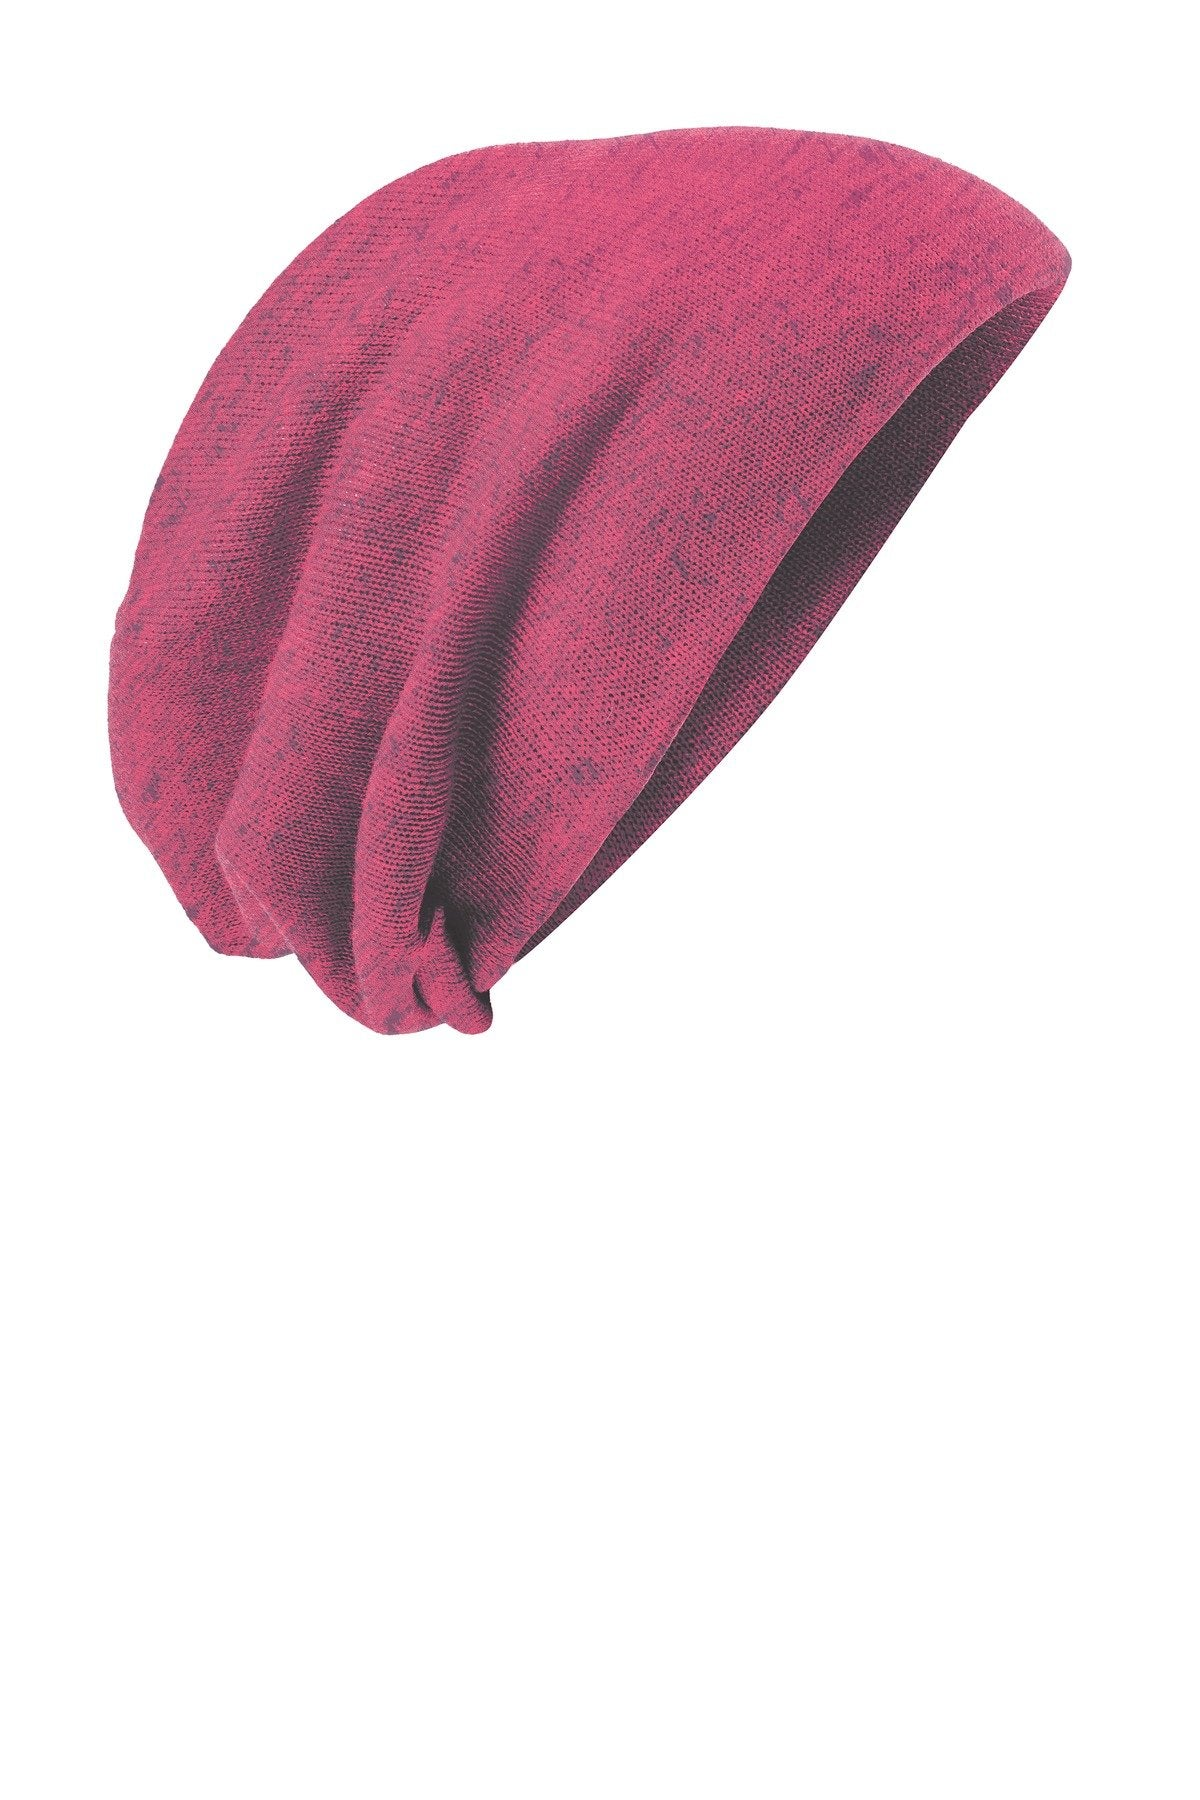 Dark Fuchsia Heather - District DT618